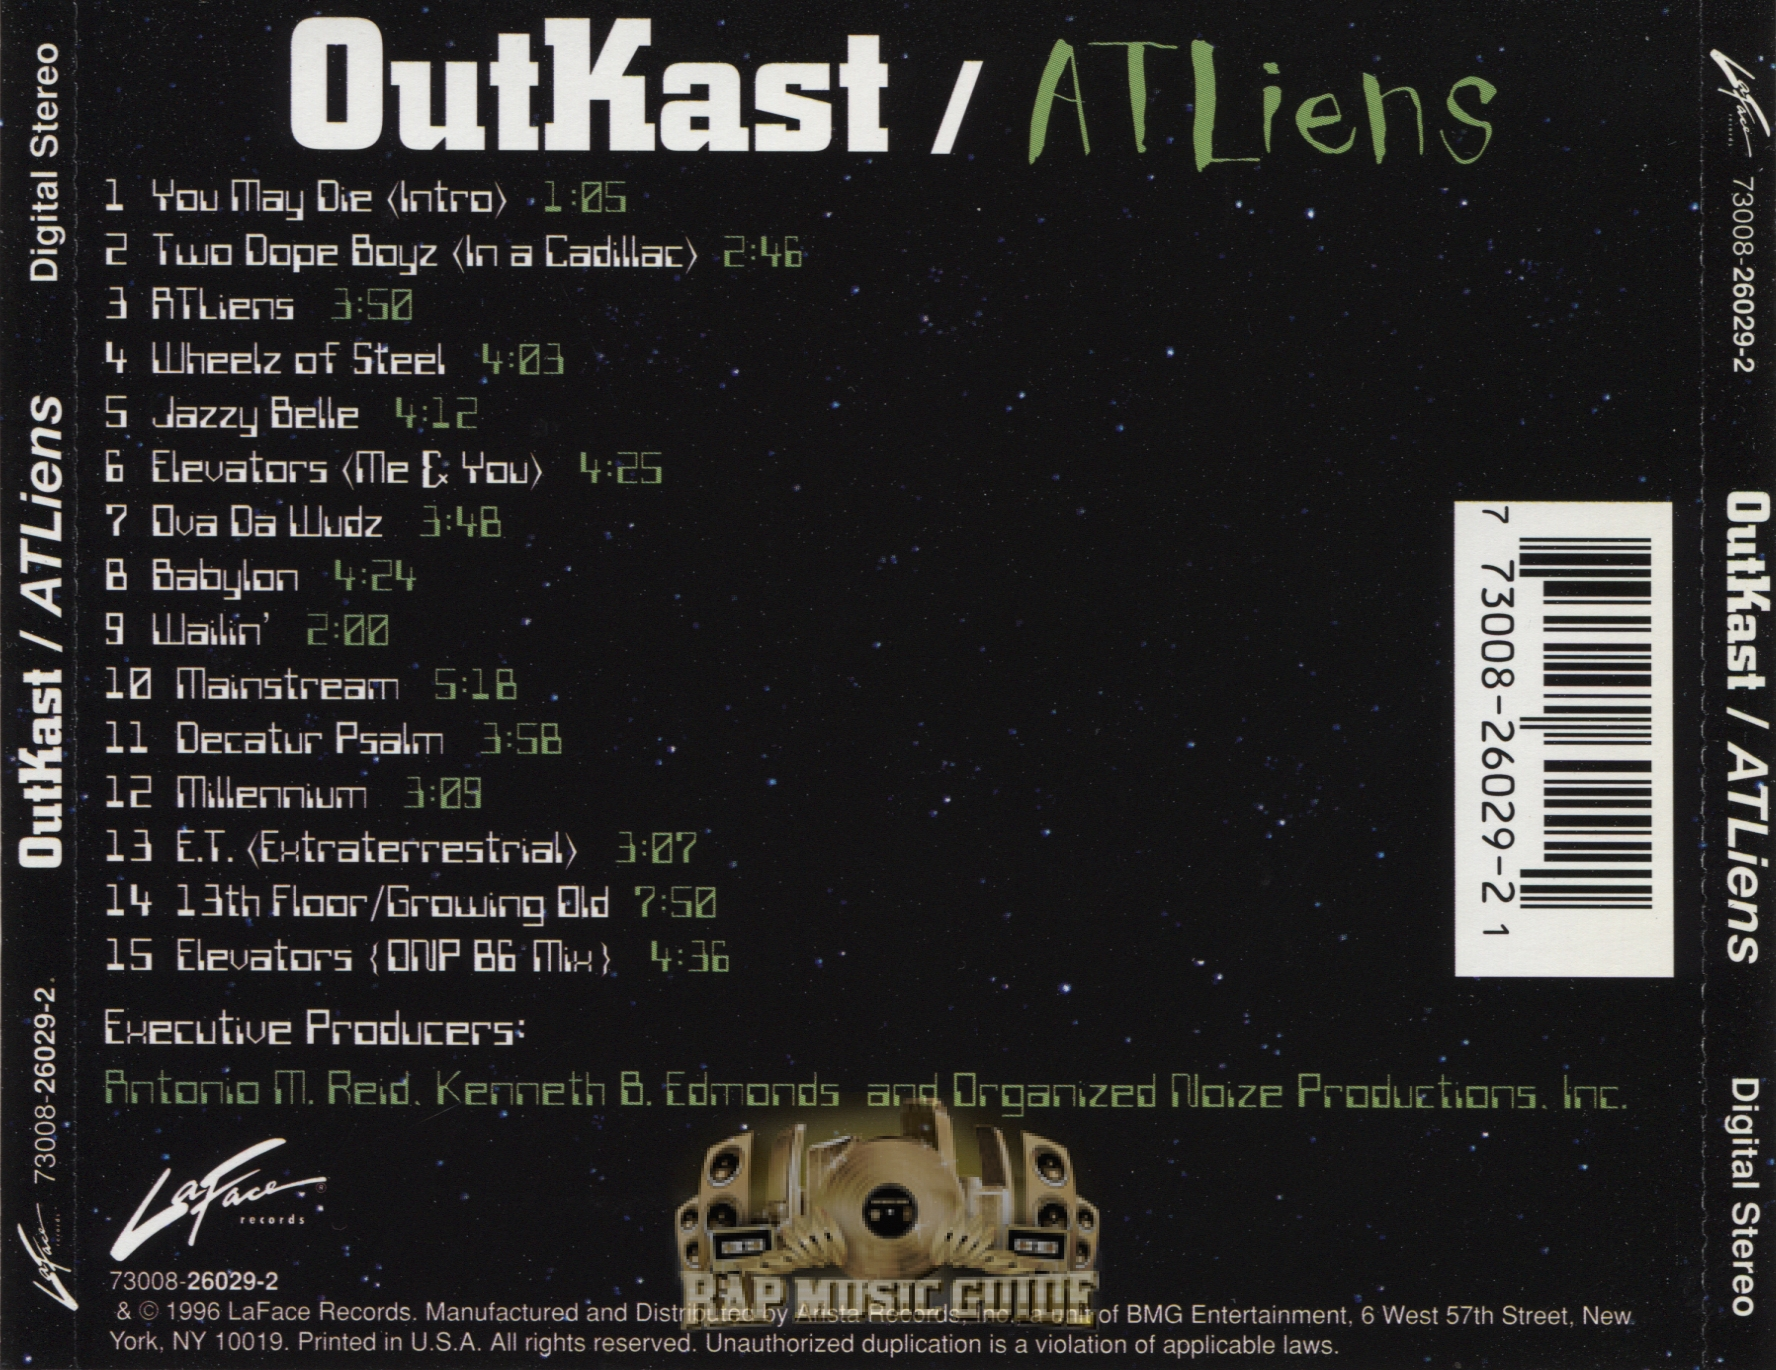 Outkast atliens cds rap music guide for 13th floor growing old